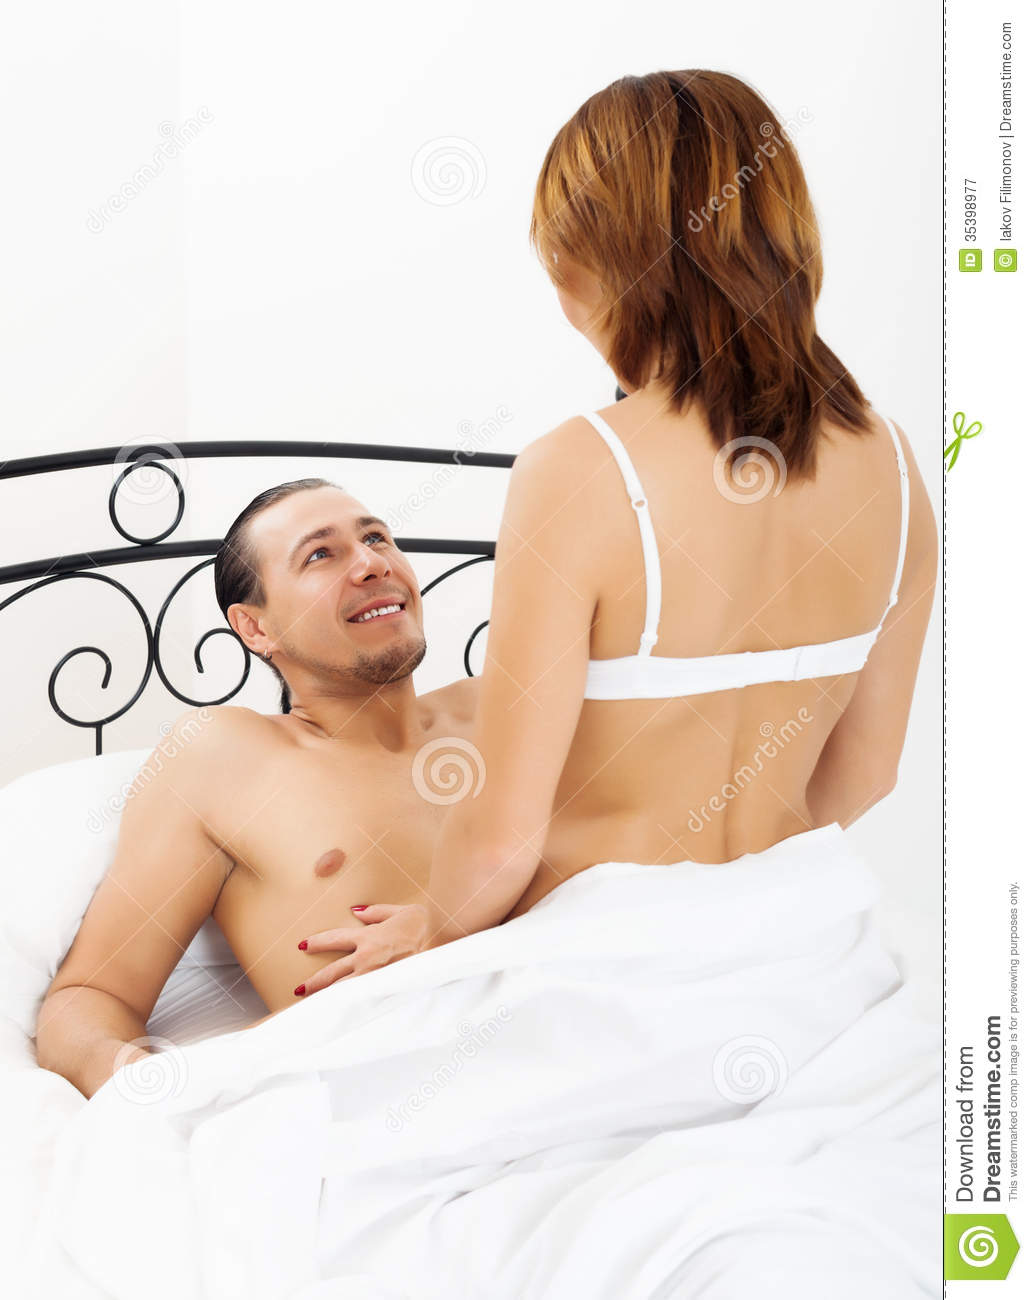 Men having sex with women in bed